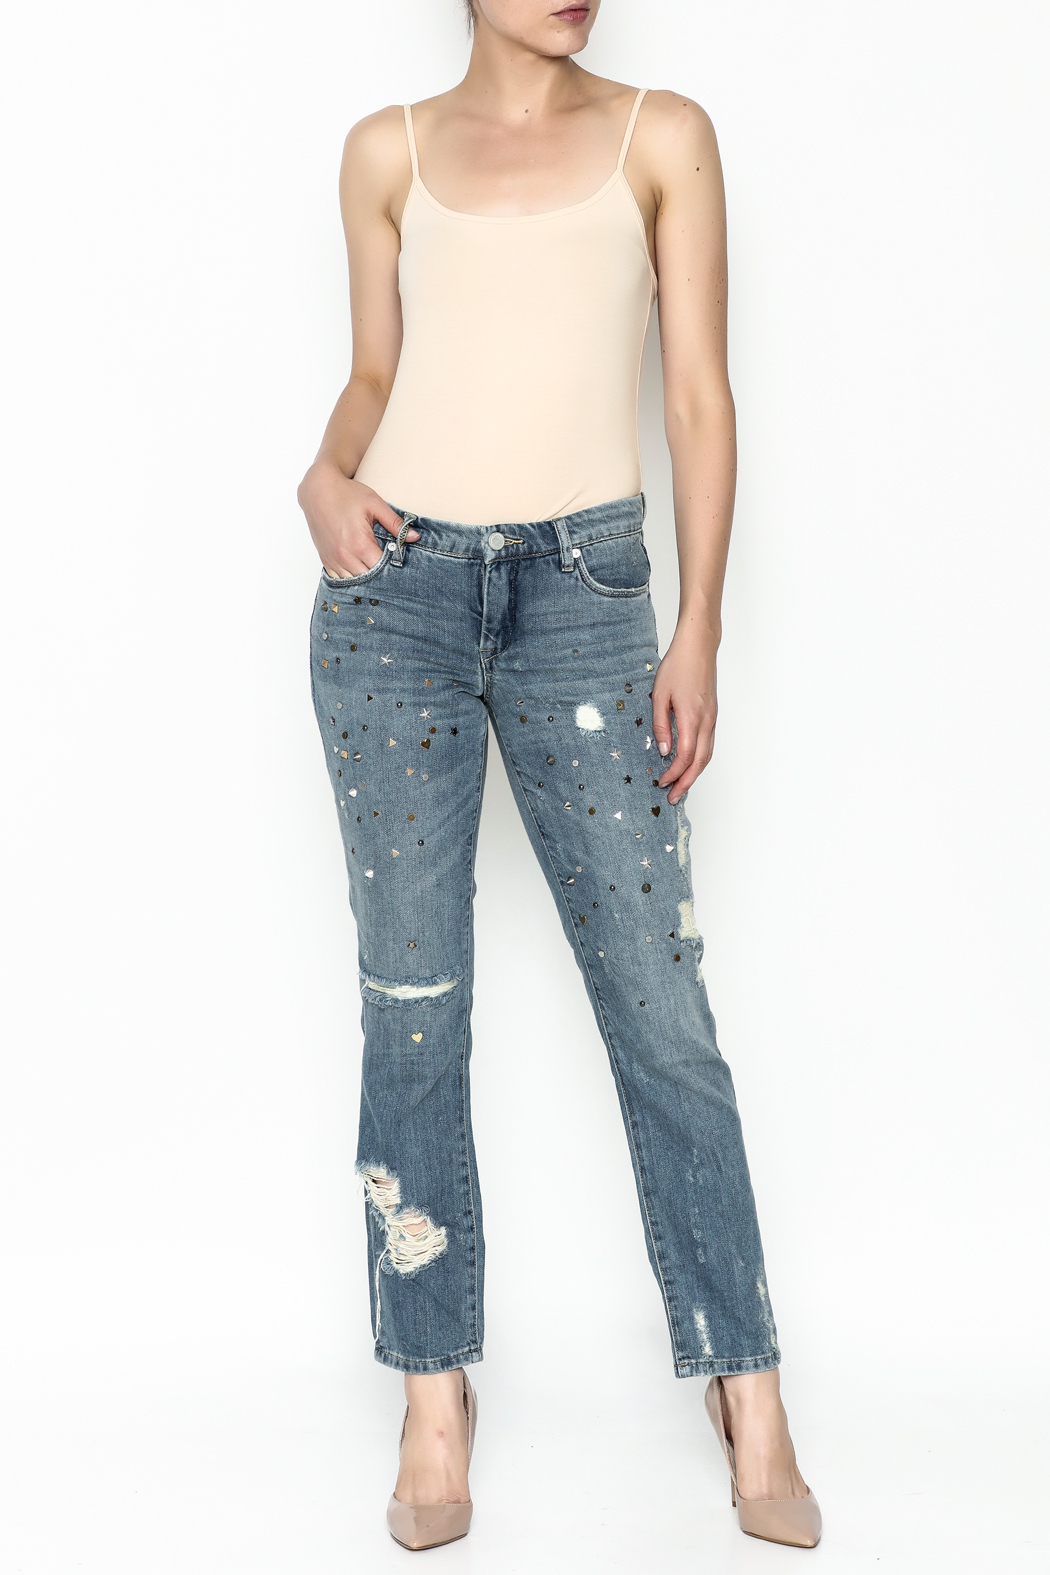 BlankNYC Studded Jeans - Side Cropped Image